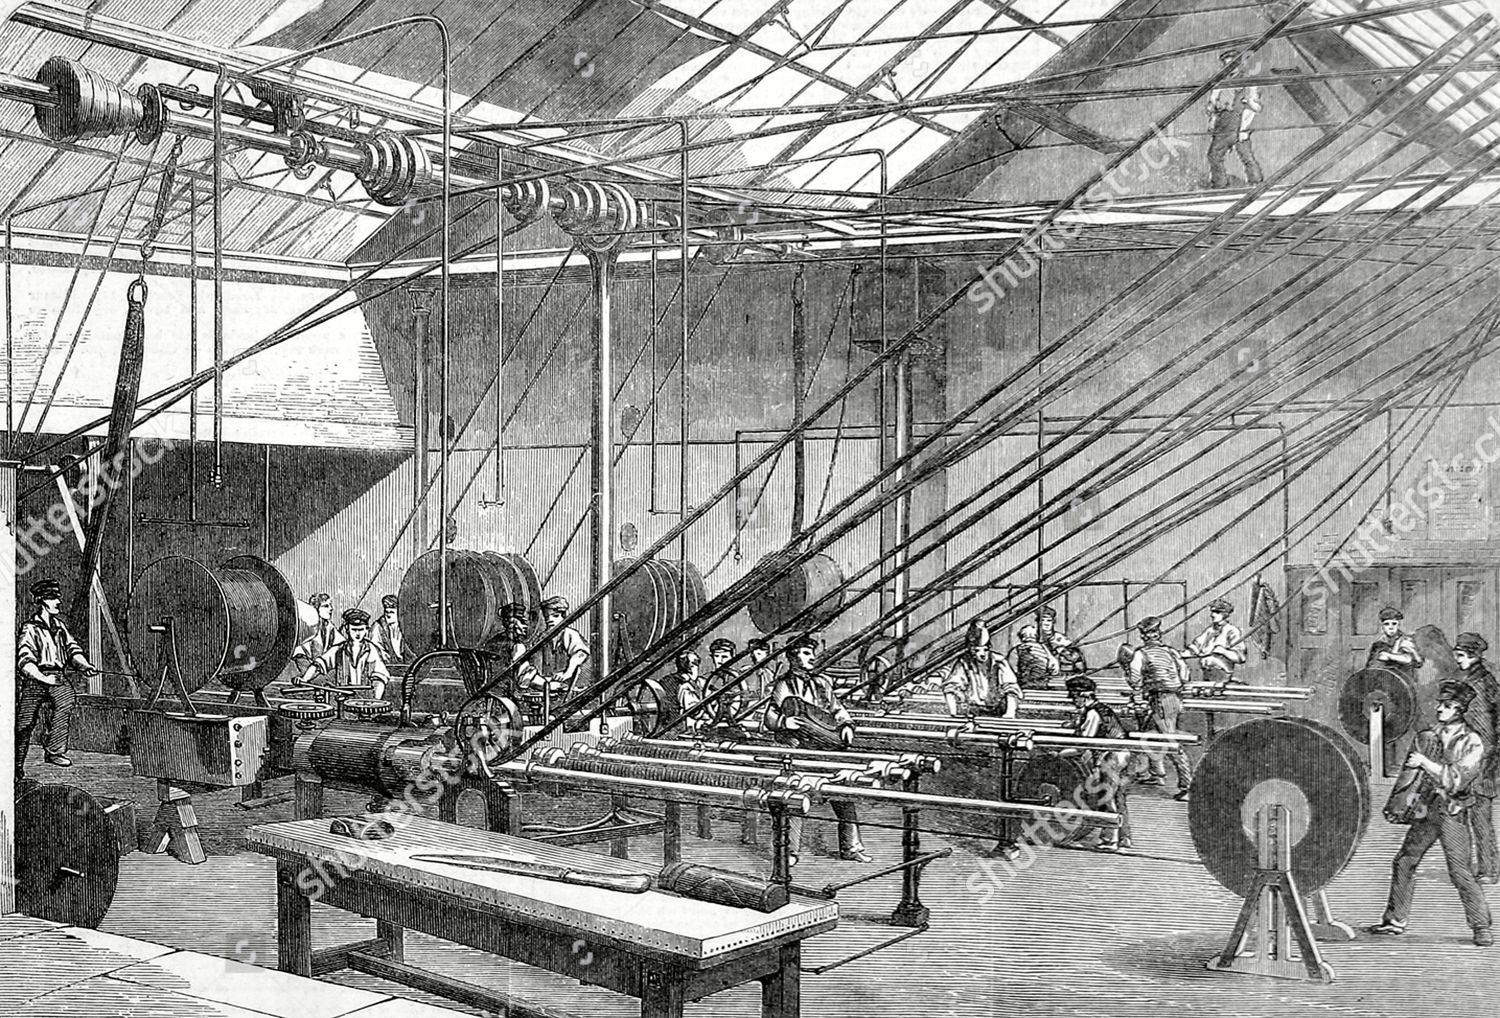 ภาพสต็อกของ Manufacture of the Atlantic Telegraph Cable - 14 Mar 1857